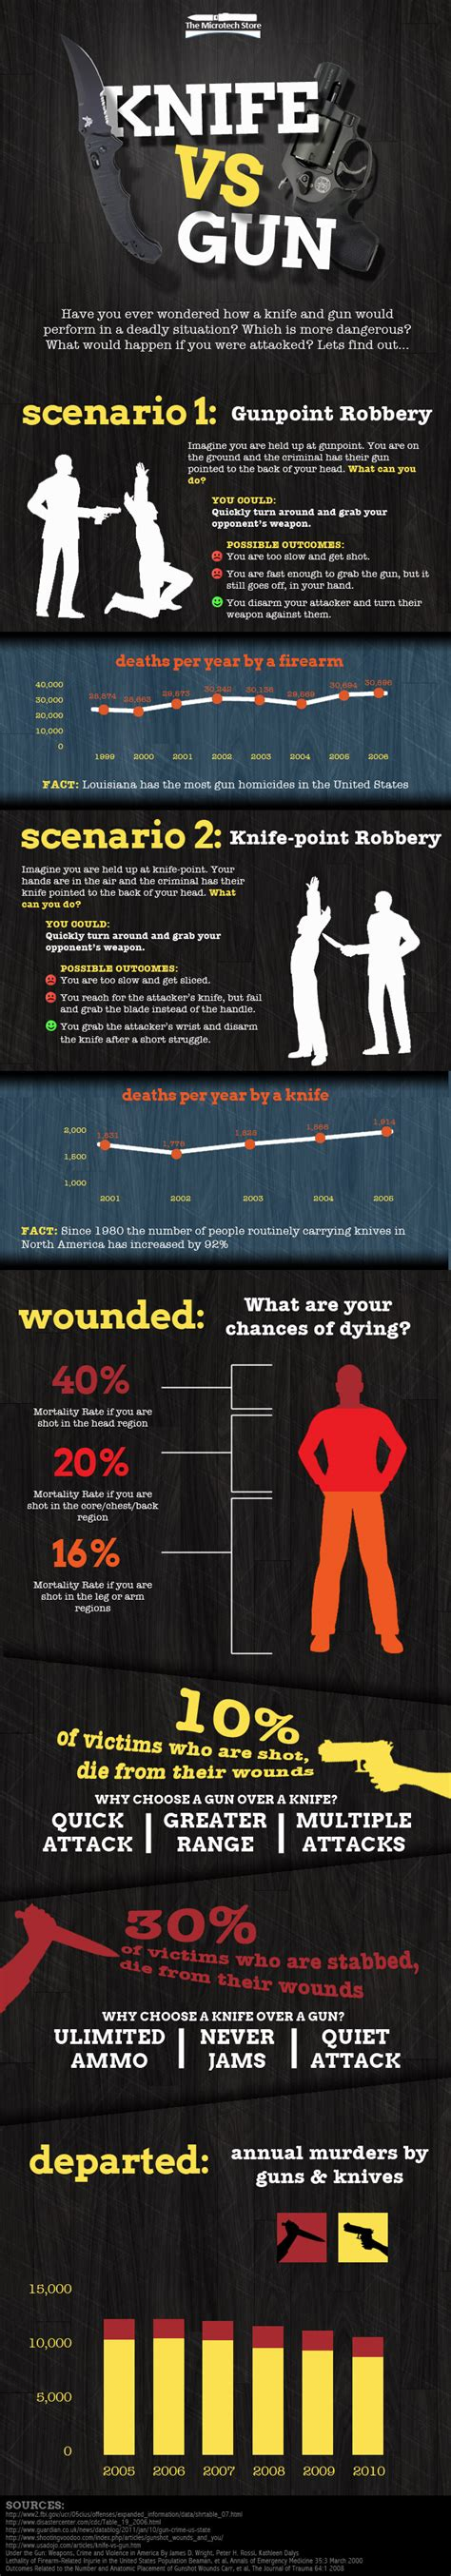 Infographic Examples   Infographic Journal